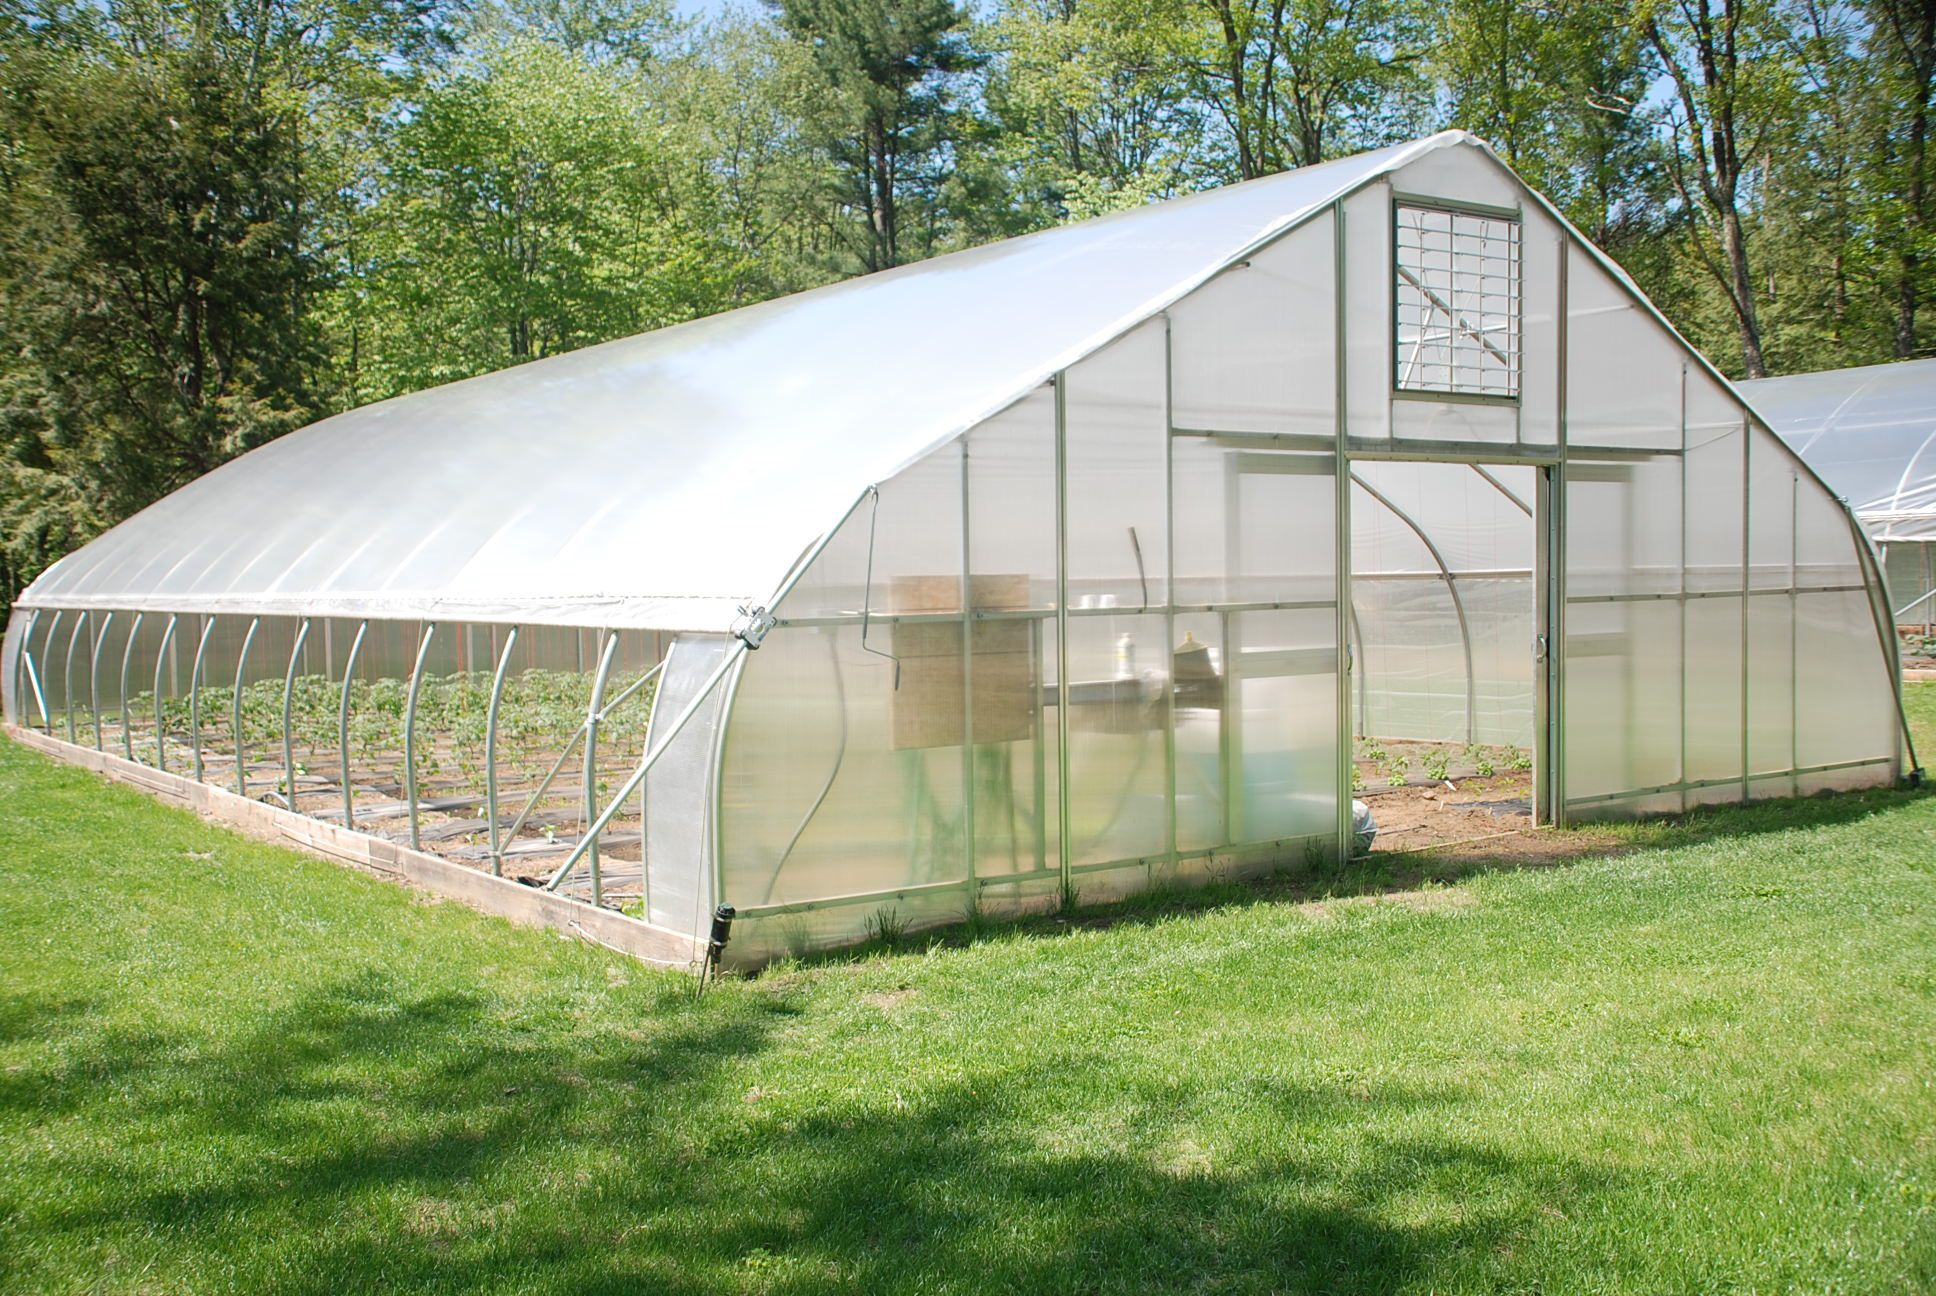 4abe58f3fab48157fea2ca03a491fea6 - Spring Gardener Gable Greenhouse Is 70810